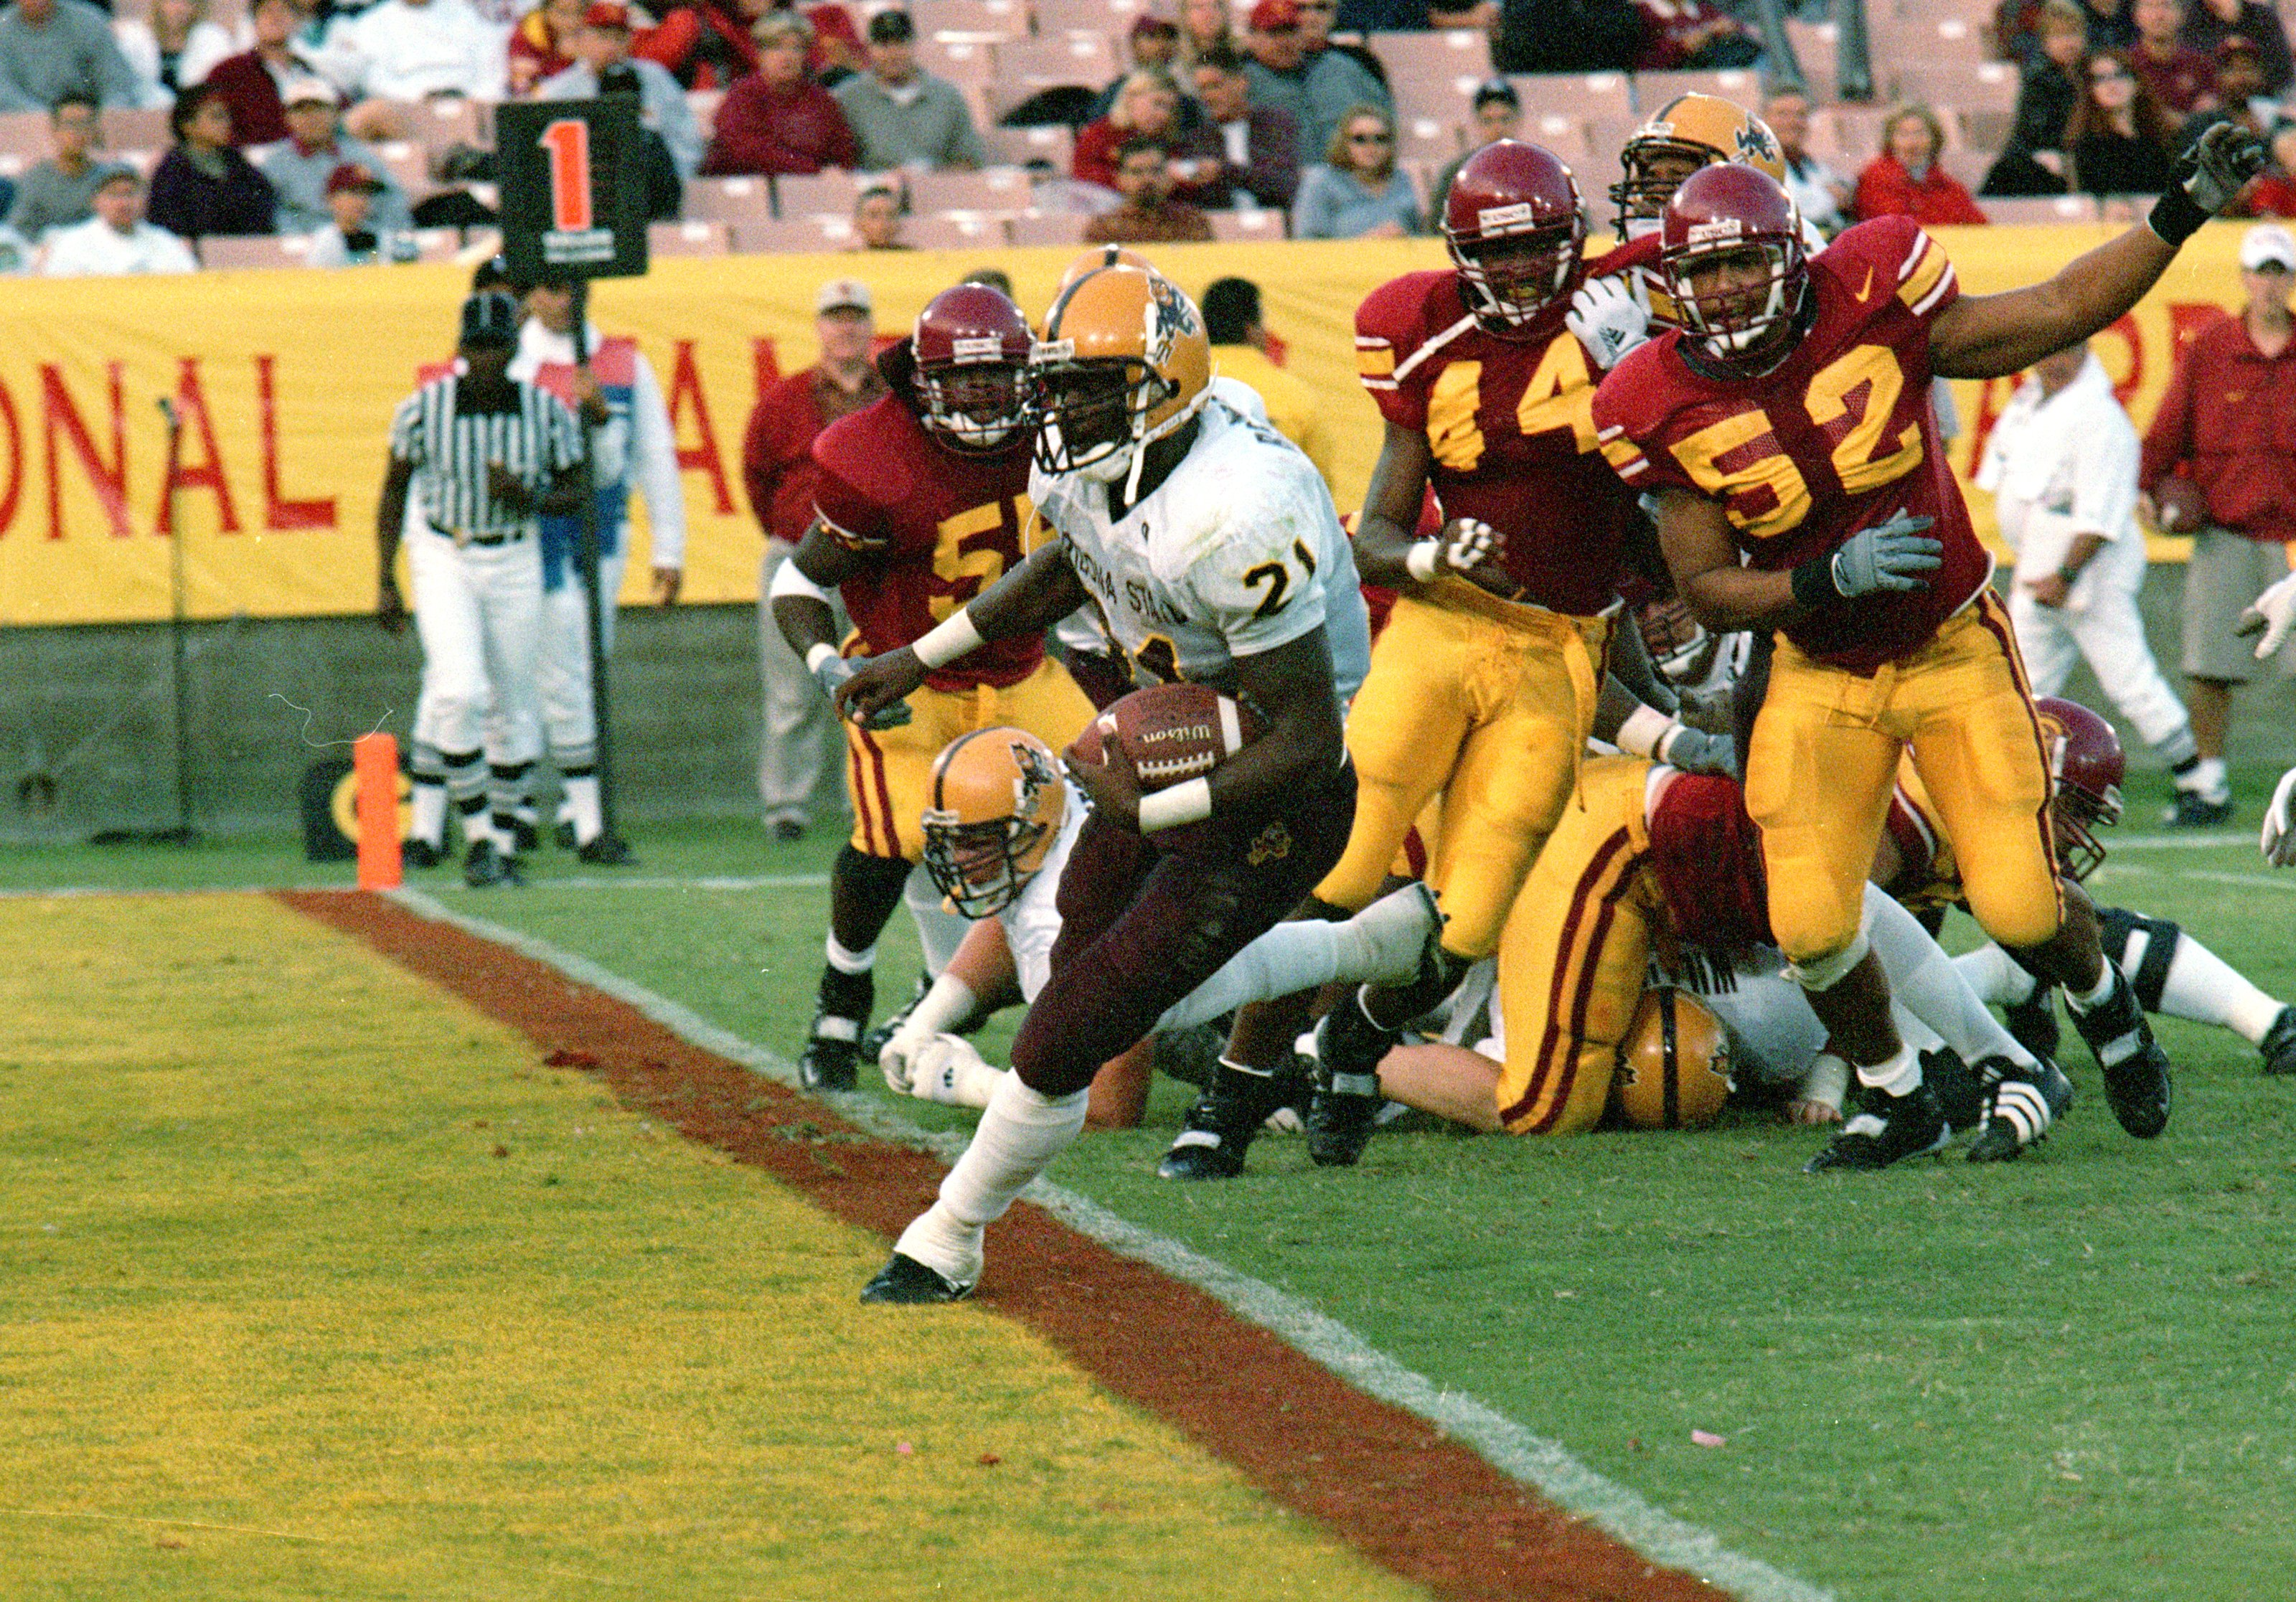 6 Nov 1999:  J.R Redmond #21 of the Arizona State Sun Devils carries the ball in for a touchdown during the game against the USC Trojans at the LA Coliseum in Los Angeles, California. The Sun Devils defeated the Trojans 26-16. Mandatory Credit: Steve Gray